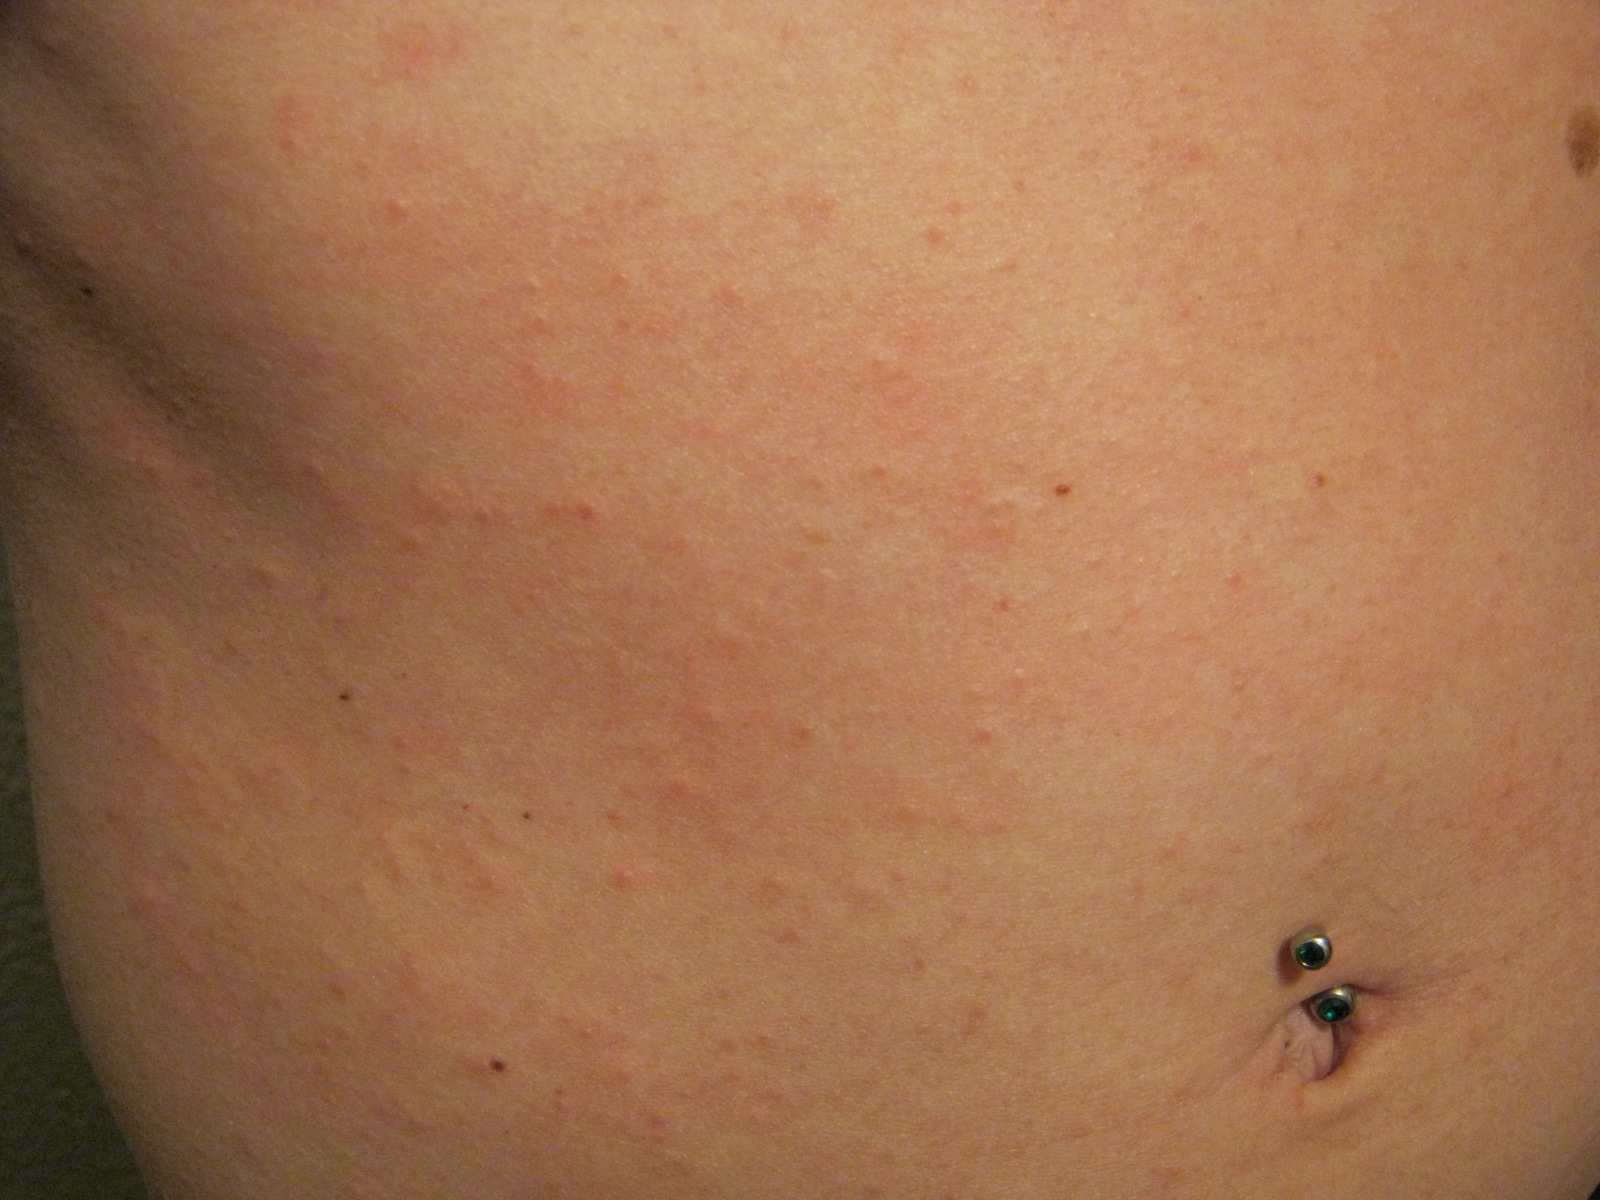 red rash on torso - Dermatology - MedHelp